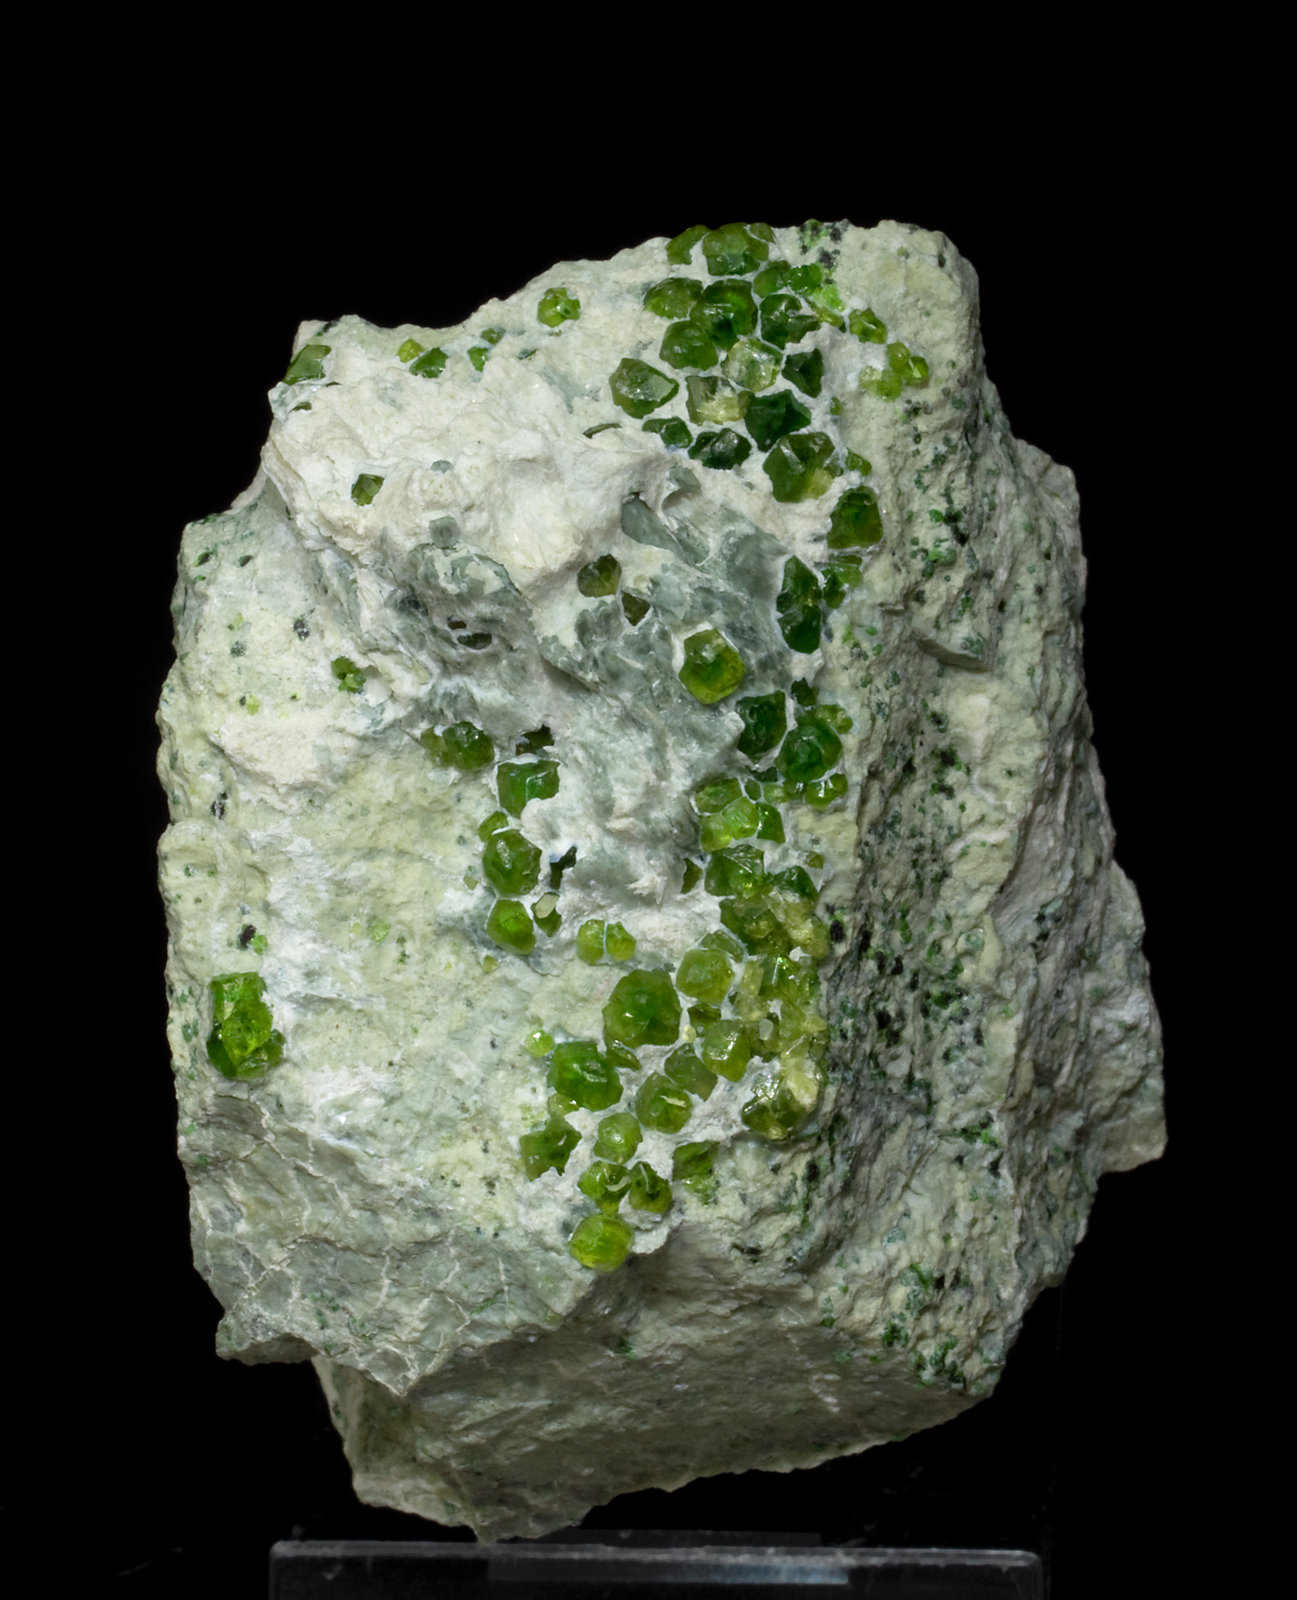 specimens/s_imagesW8/Andradite_Demantoid-EC36W8f.jpg